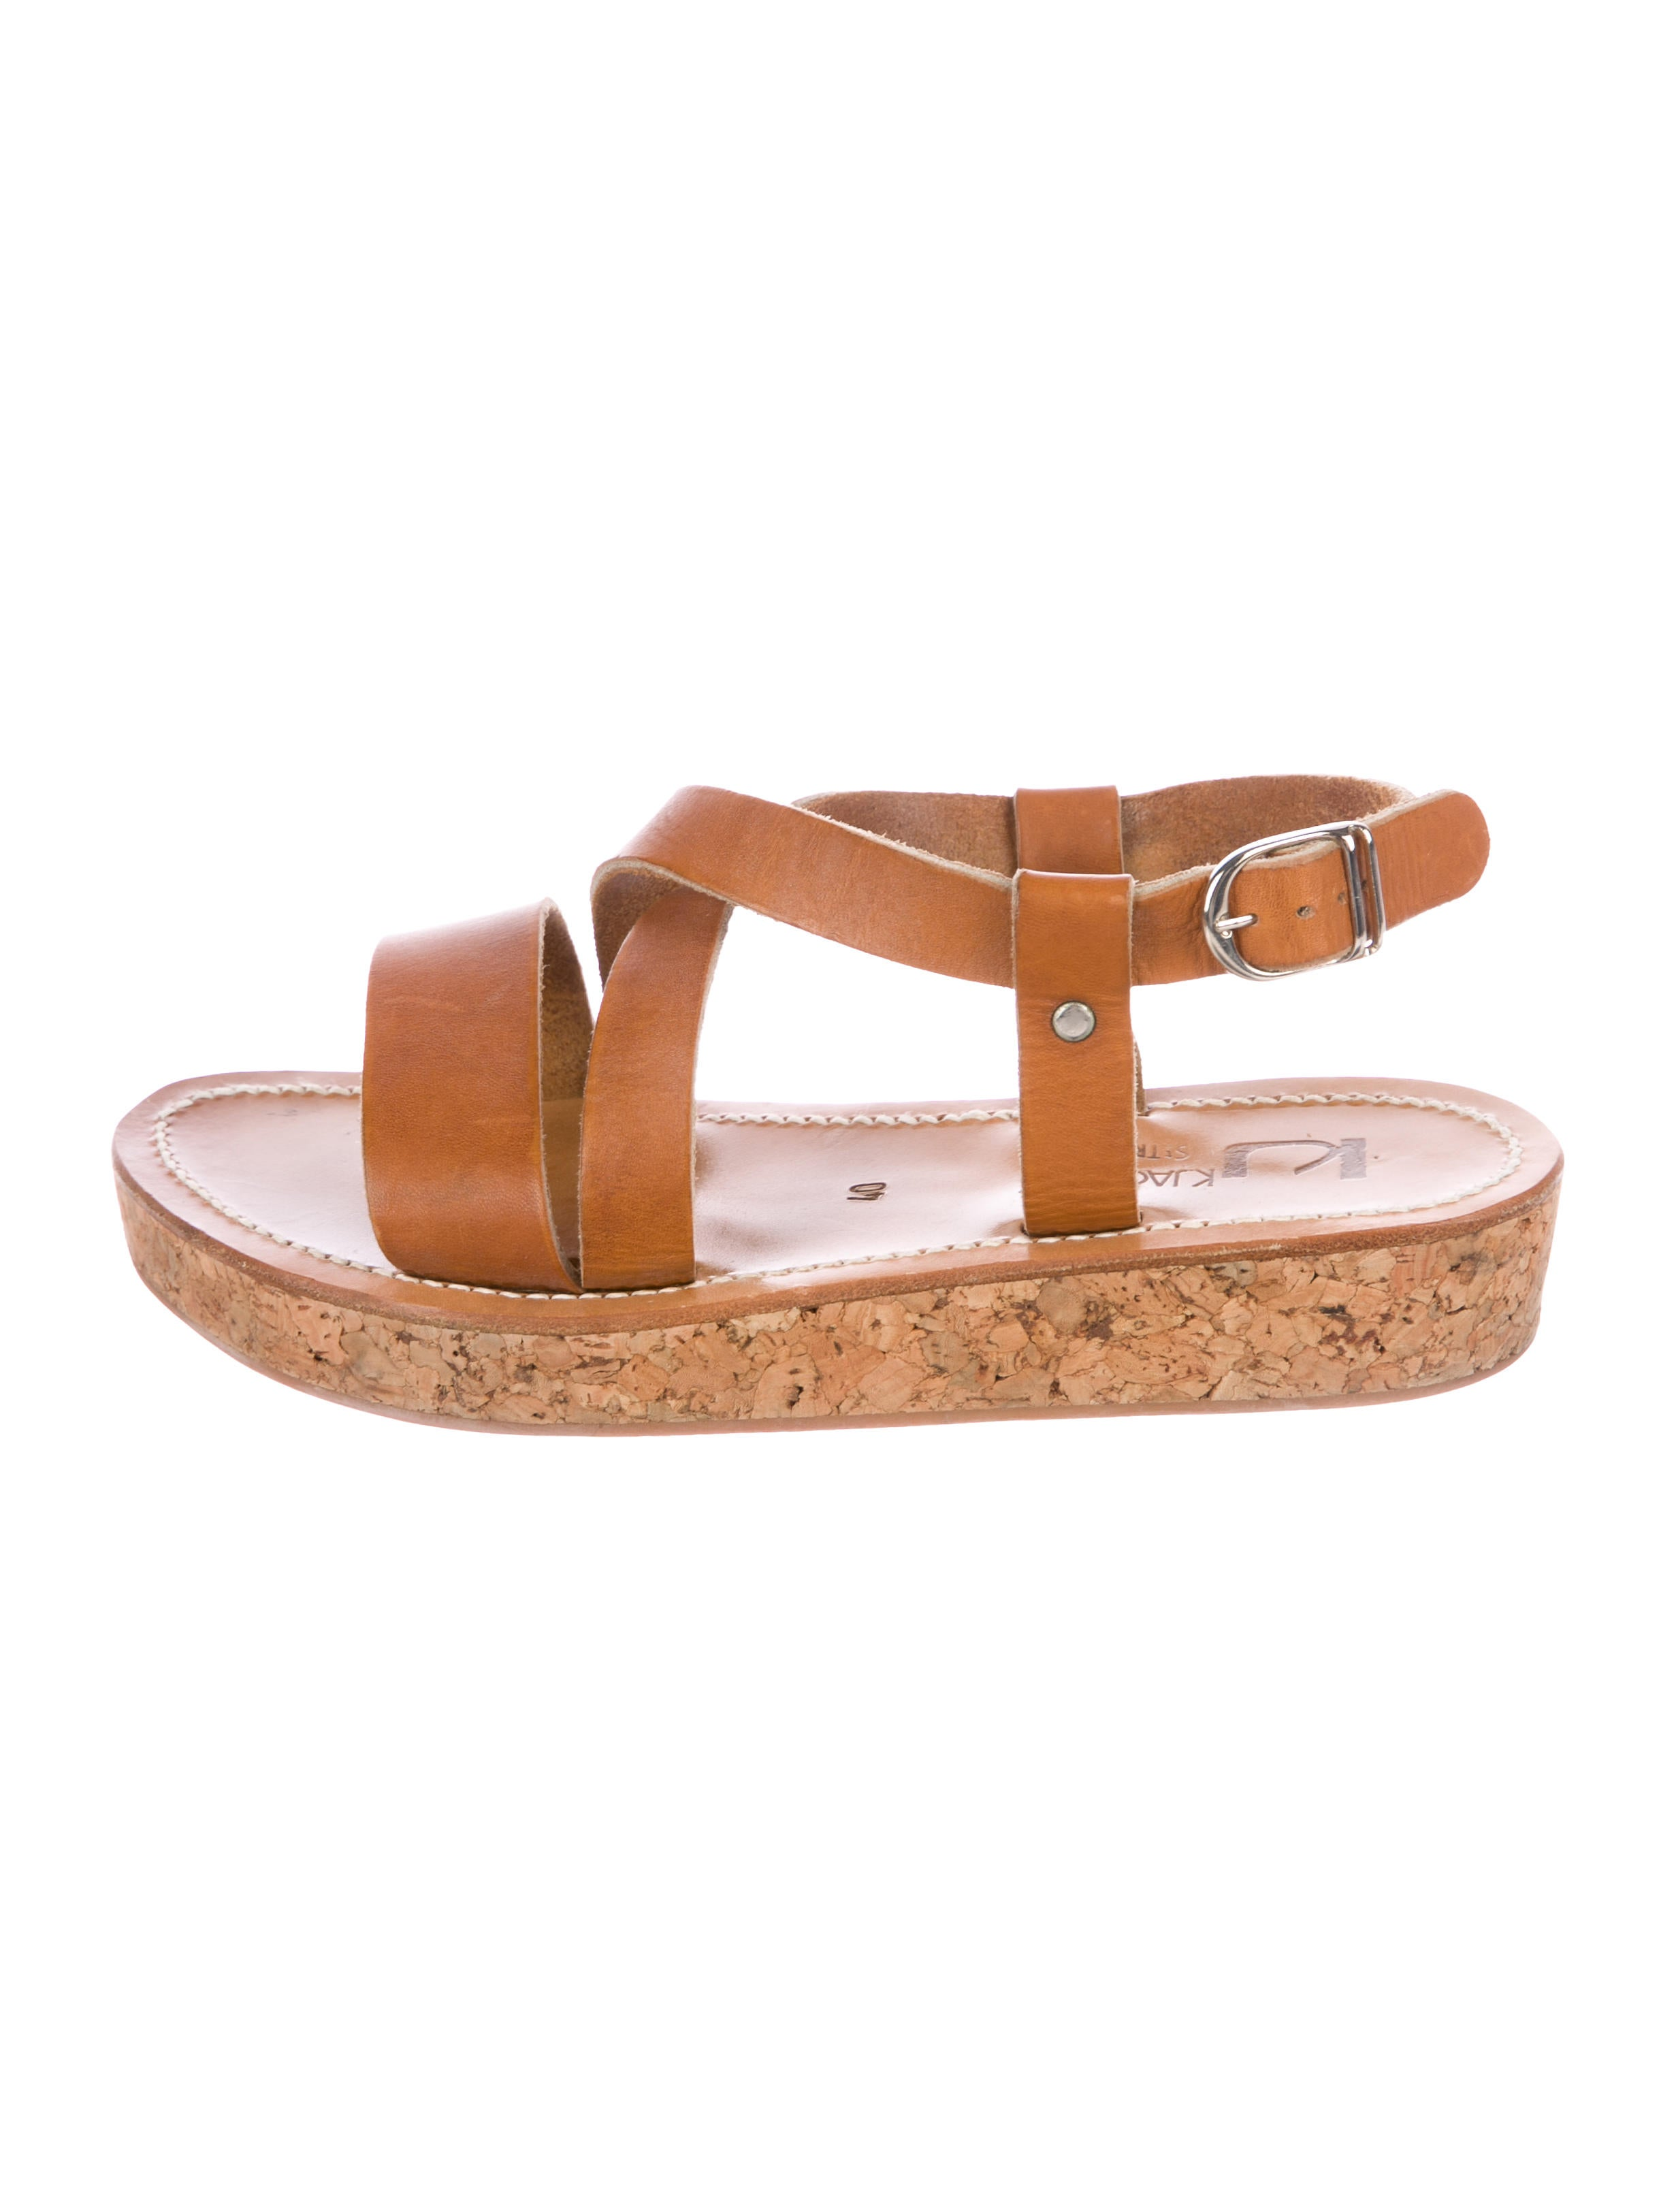 K Jacques St. Tropez Leather Crossover Sandals for nice sale online buy cheap 100% original many kinds of sale online genuine cheap online 100% guaranteed cheap online KRY32D